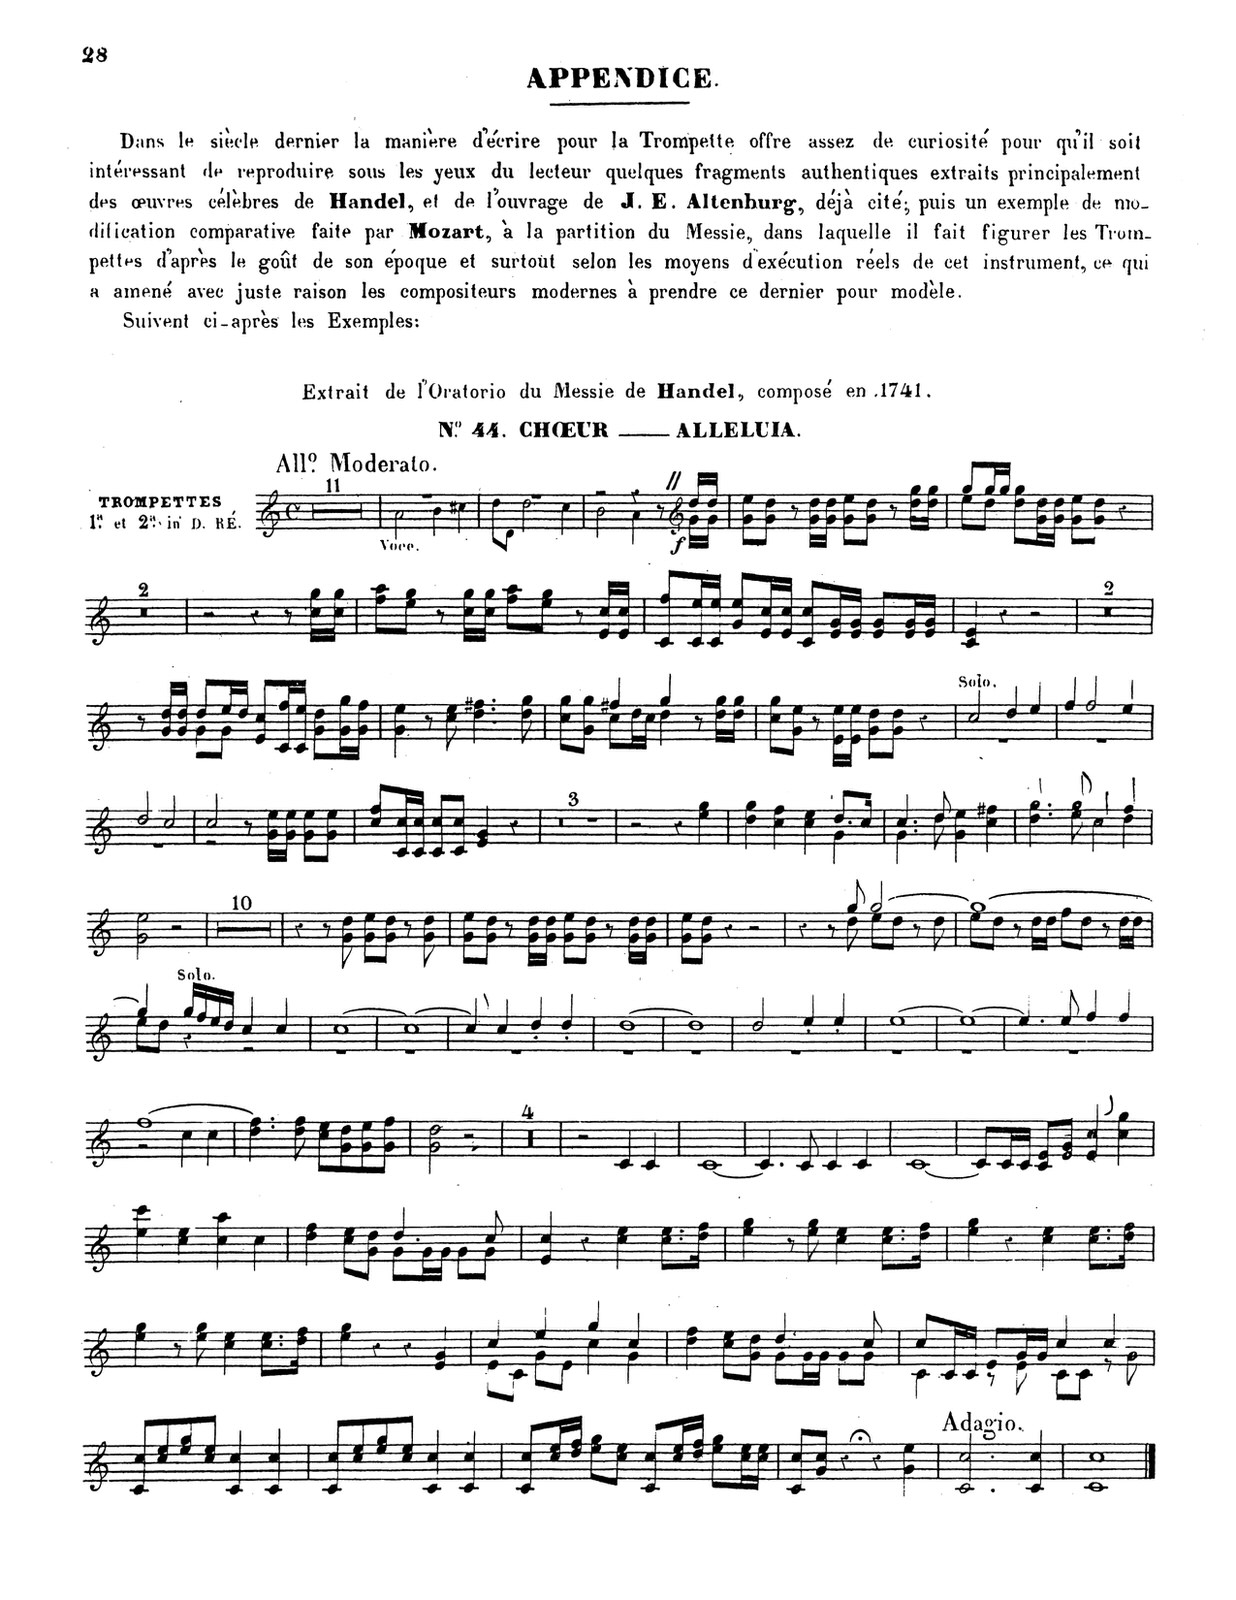 Dauverne, Method for the Trumpet 4